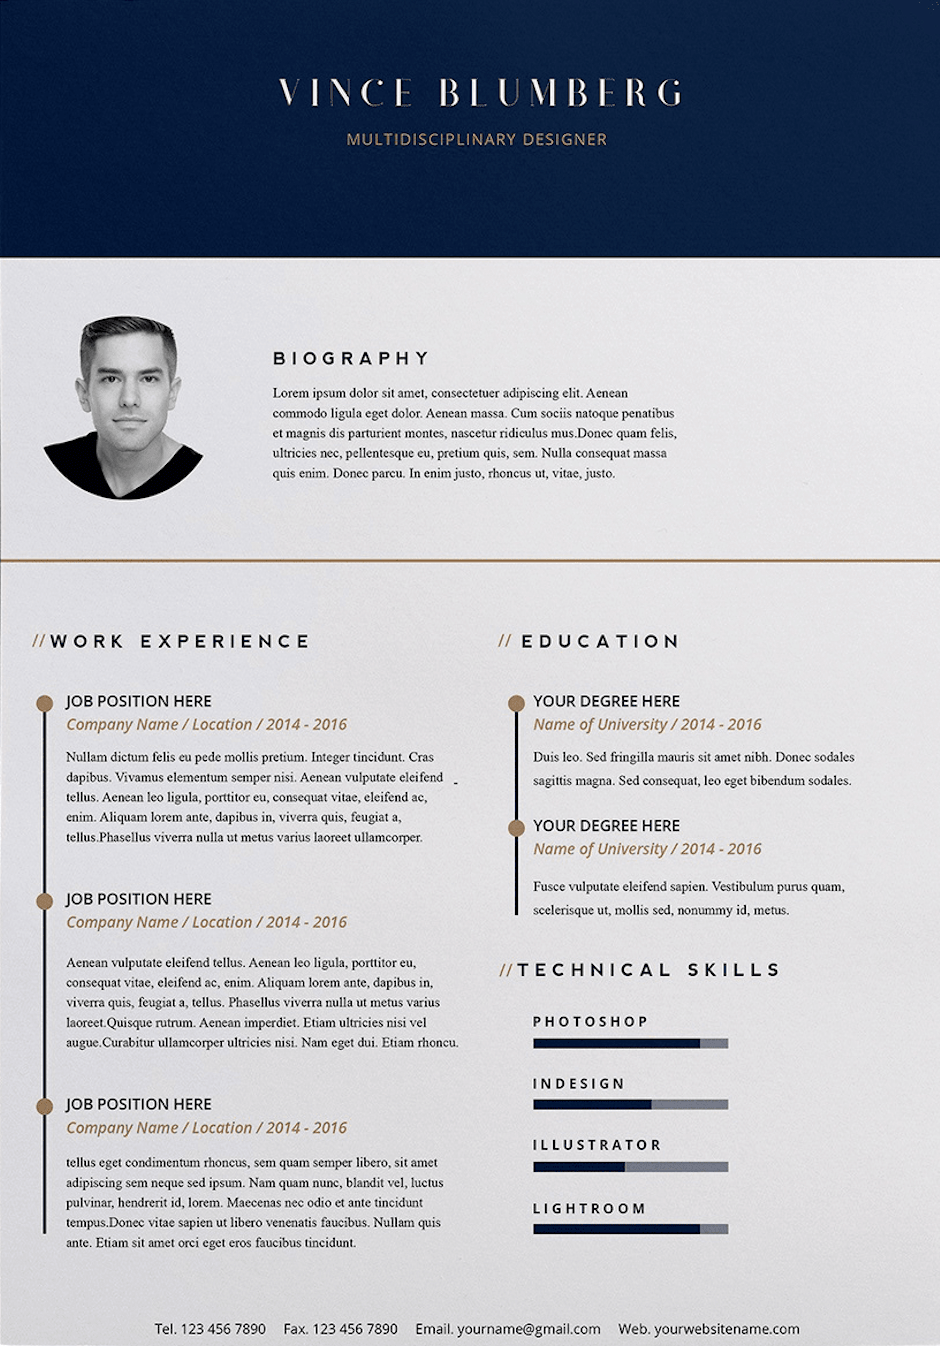 Word Resume Templates 20 Free And Premium Download